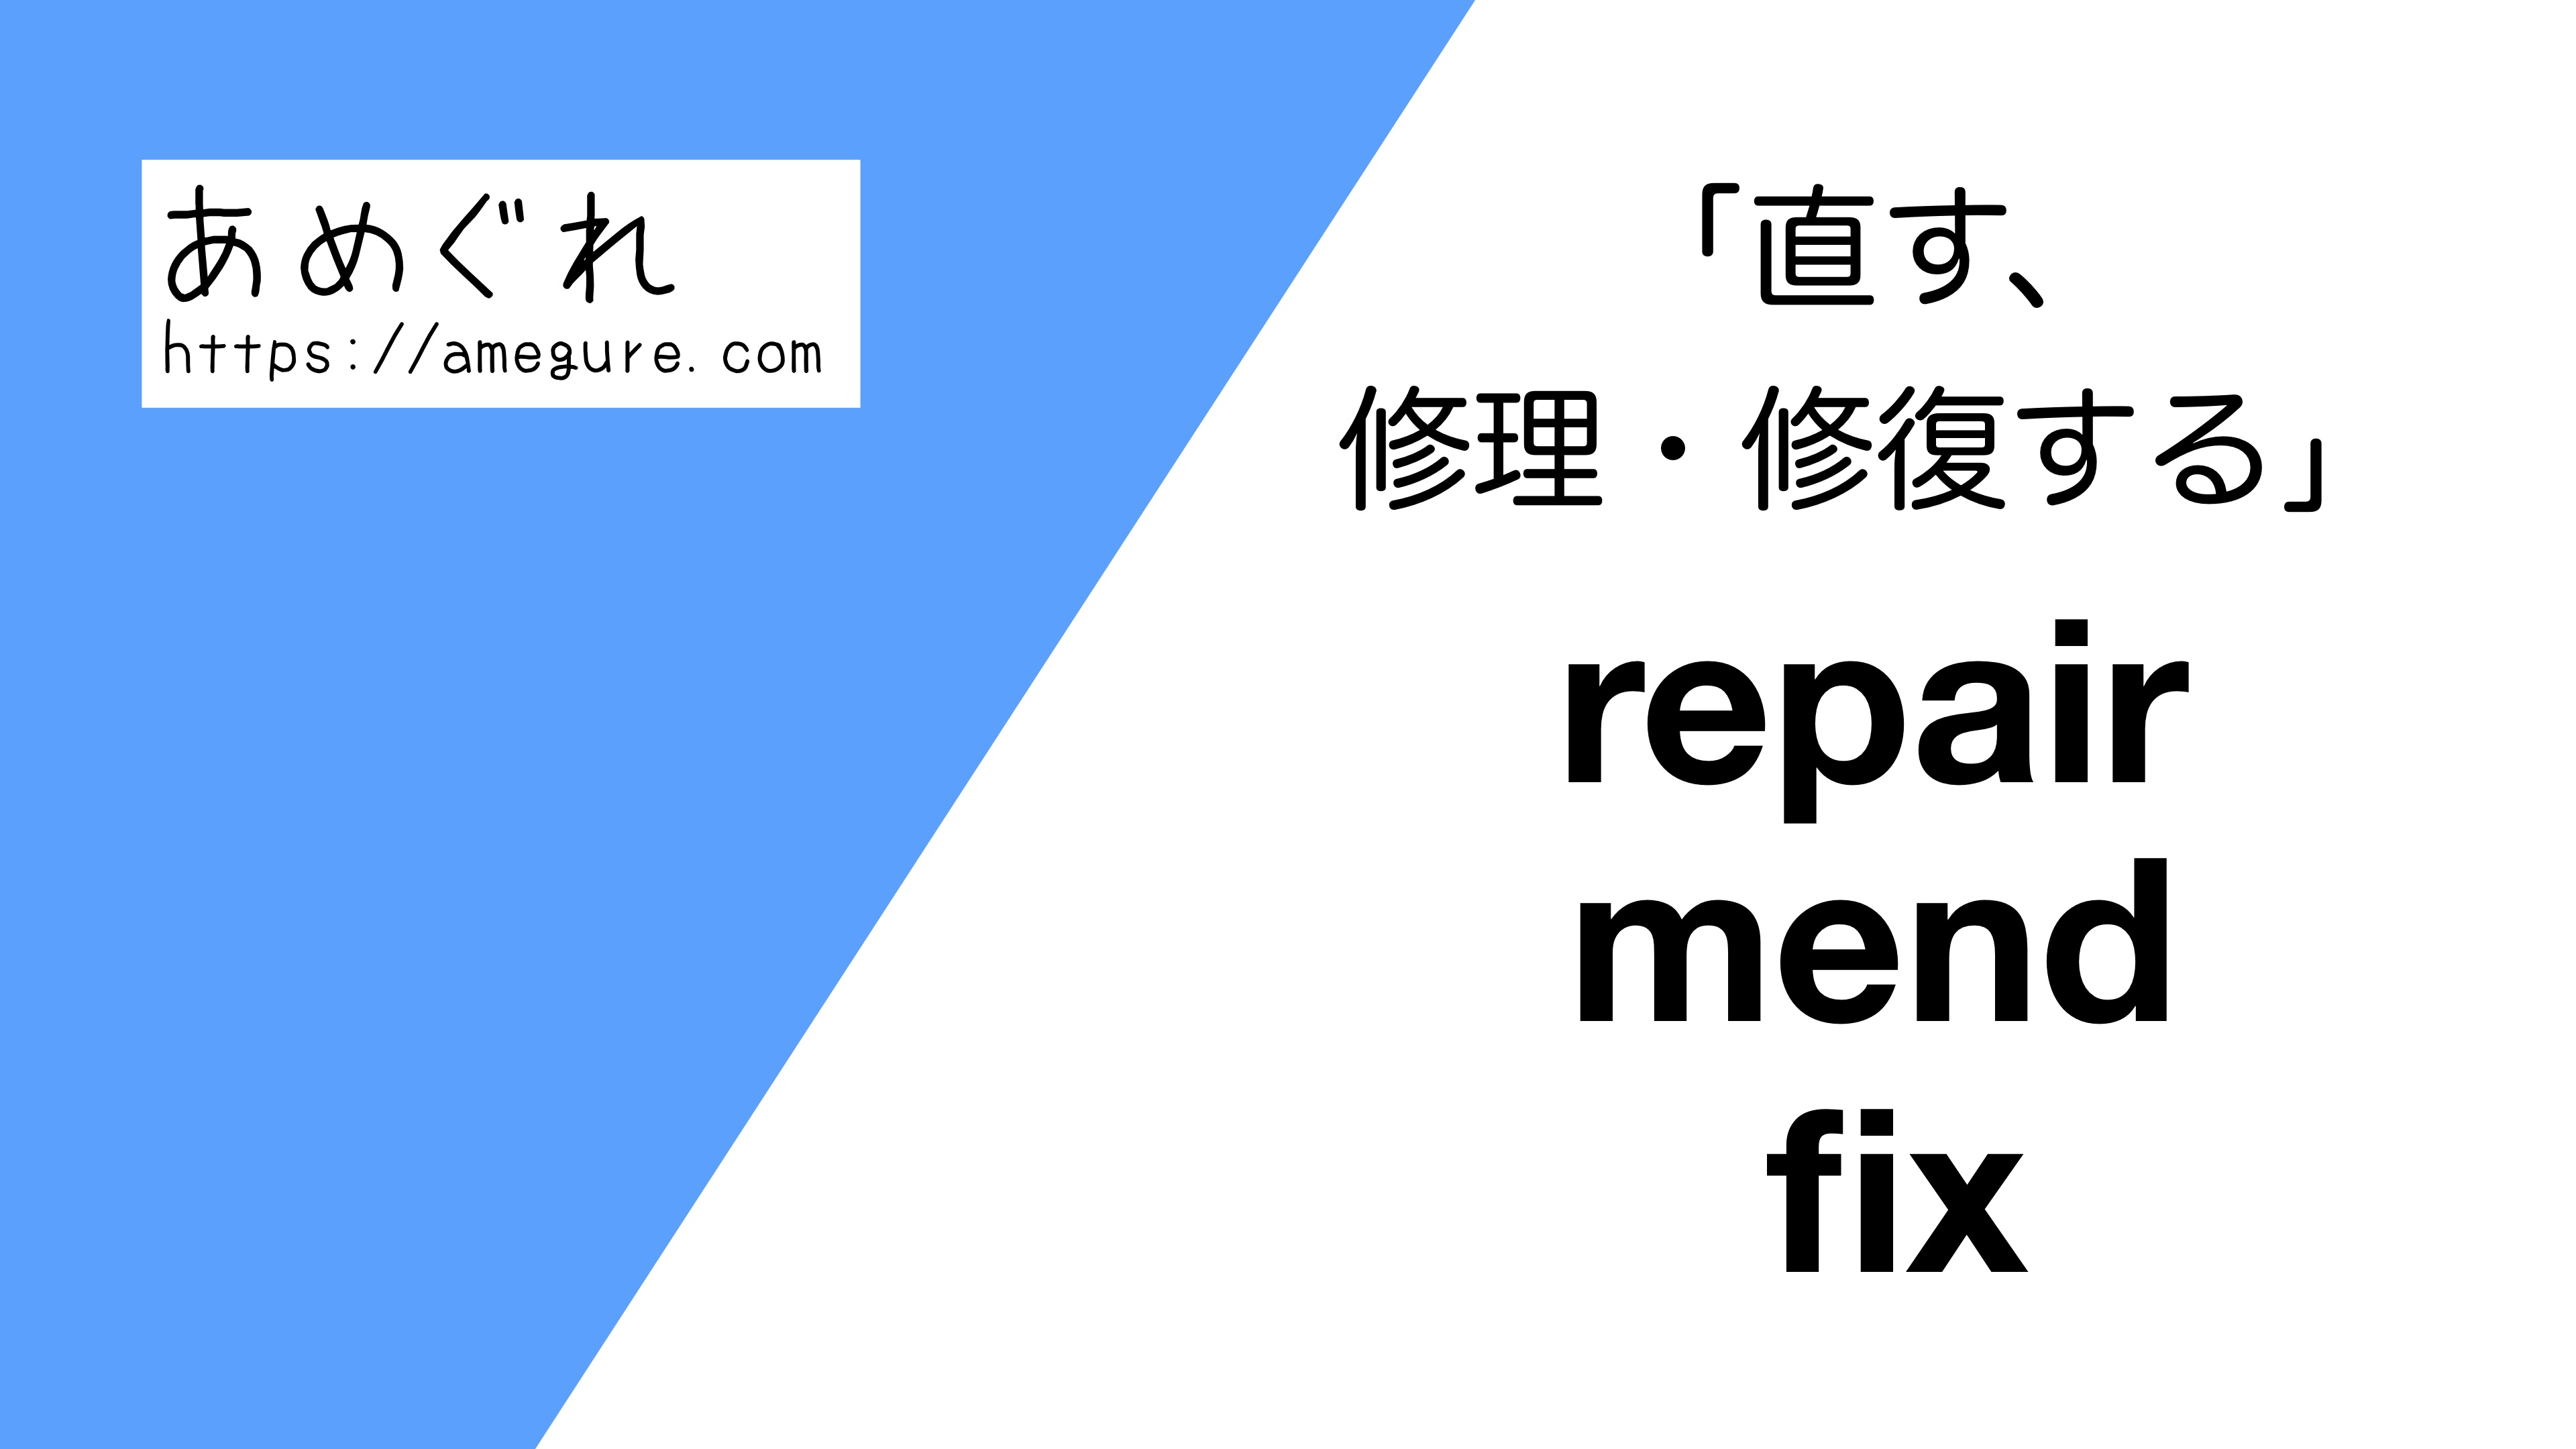 repair-mend-fix違い